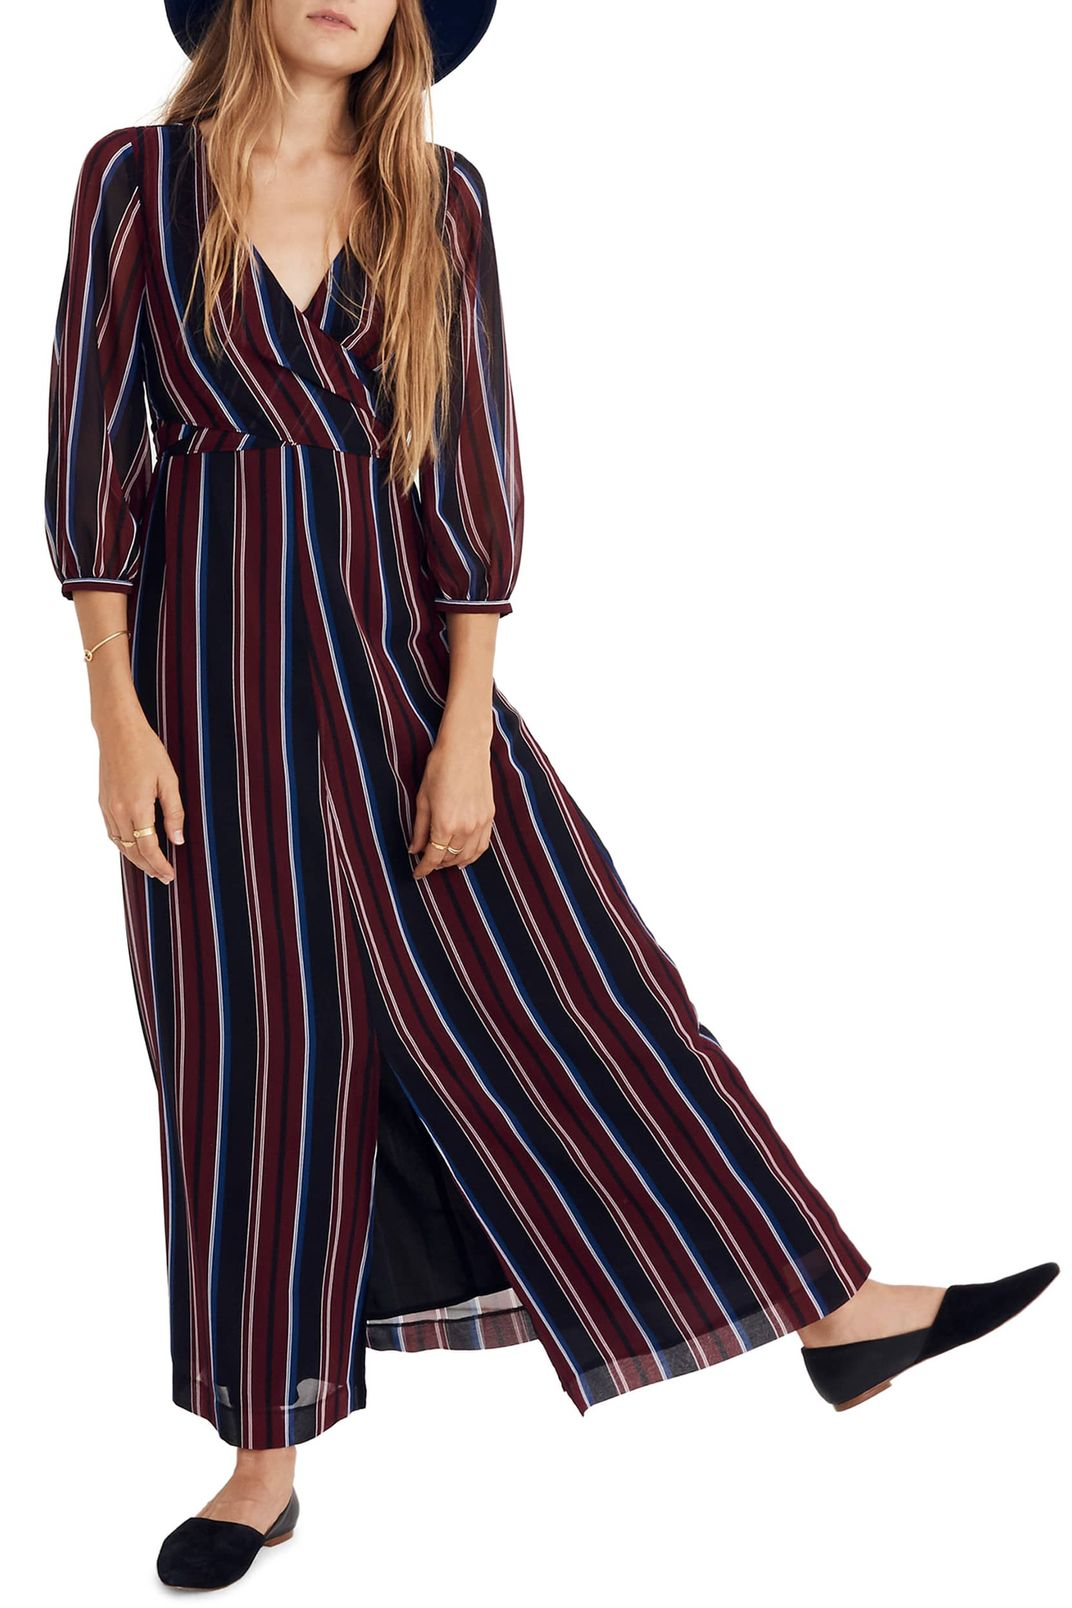 Madewell Stripe Wraparound Maxi Dress